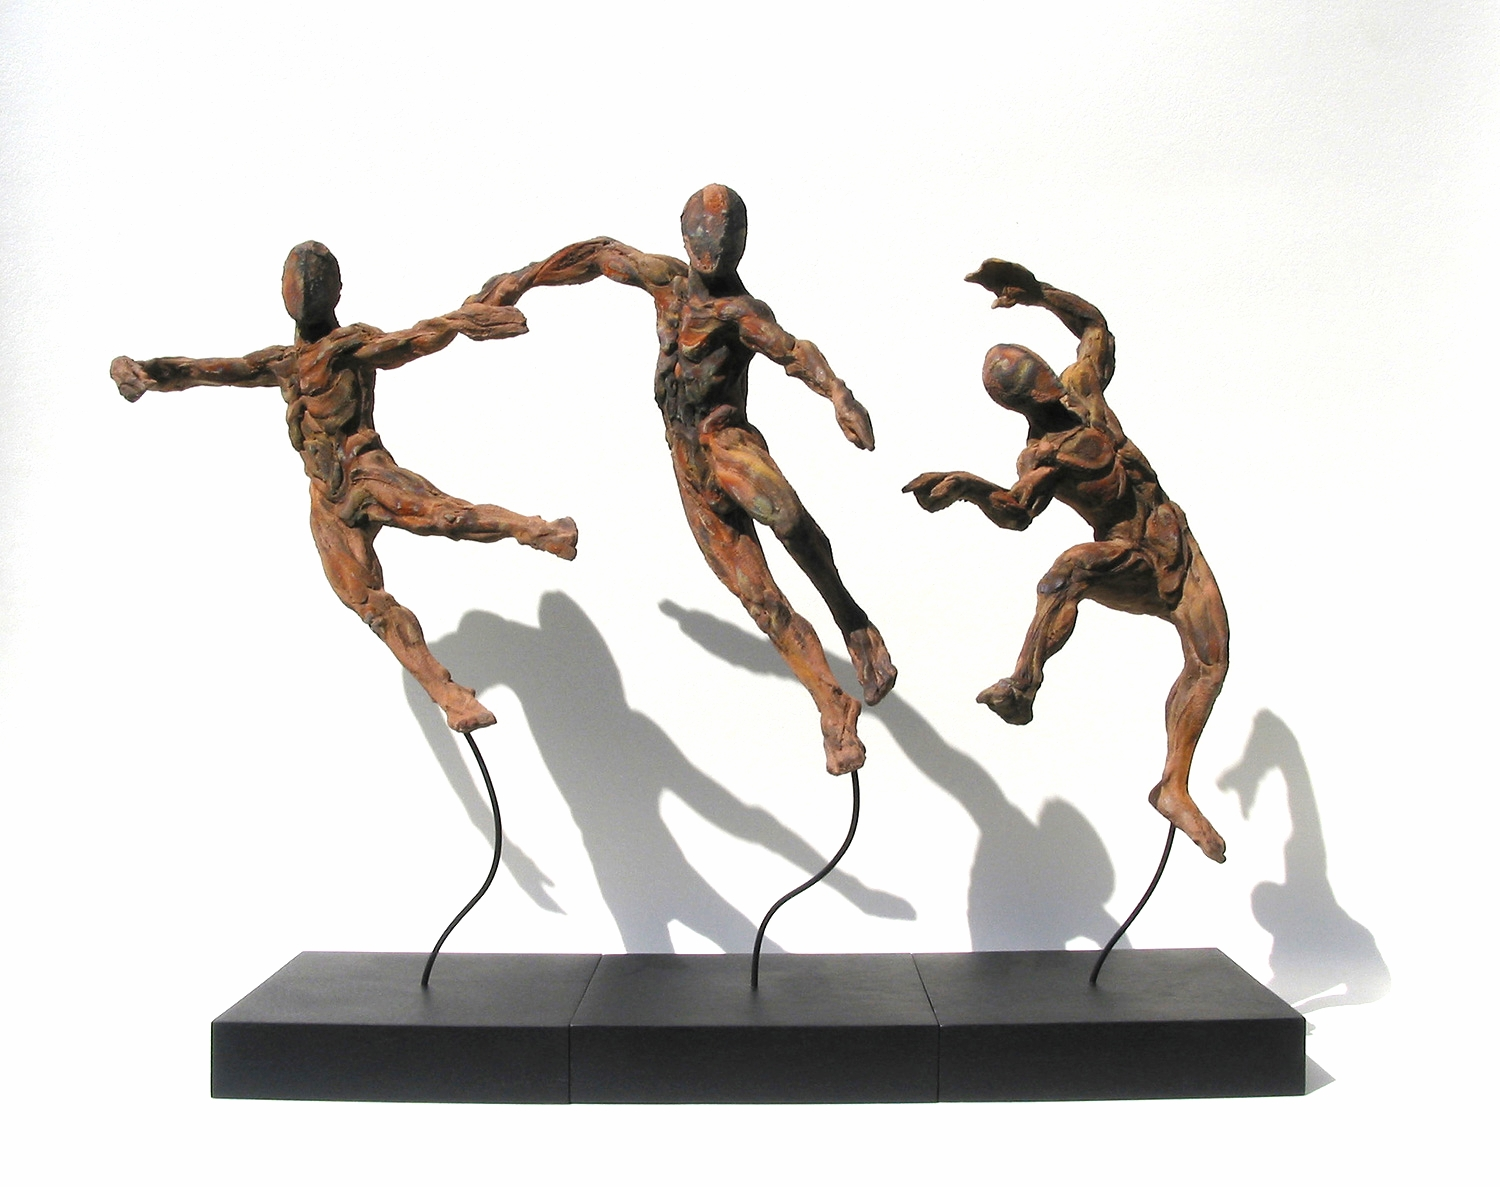 Switchback  ©  66 cm high x 90 cm wide  Unique.  Diamantopoulo's figuration is both an exploration of the human form in its many guises and the conjoining of man, woman and beast.  It takes many shapes and forms whether classical, dynamic, pared down, abstracted or cut very often with subversive wit.  Dancing in the flames of some infernal place, faceless human figures emerge from the raw stuff of life in these quick sketches in clay.